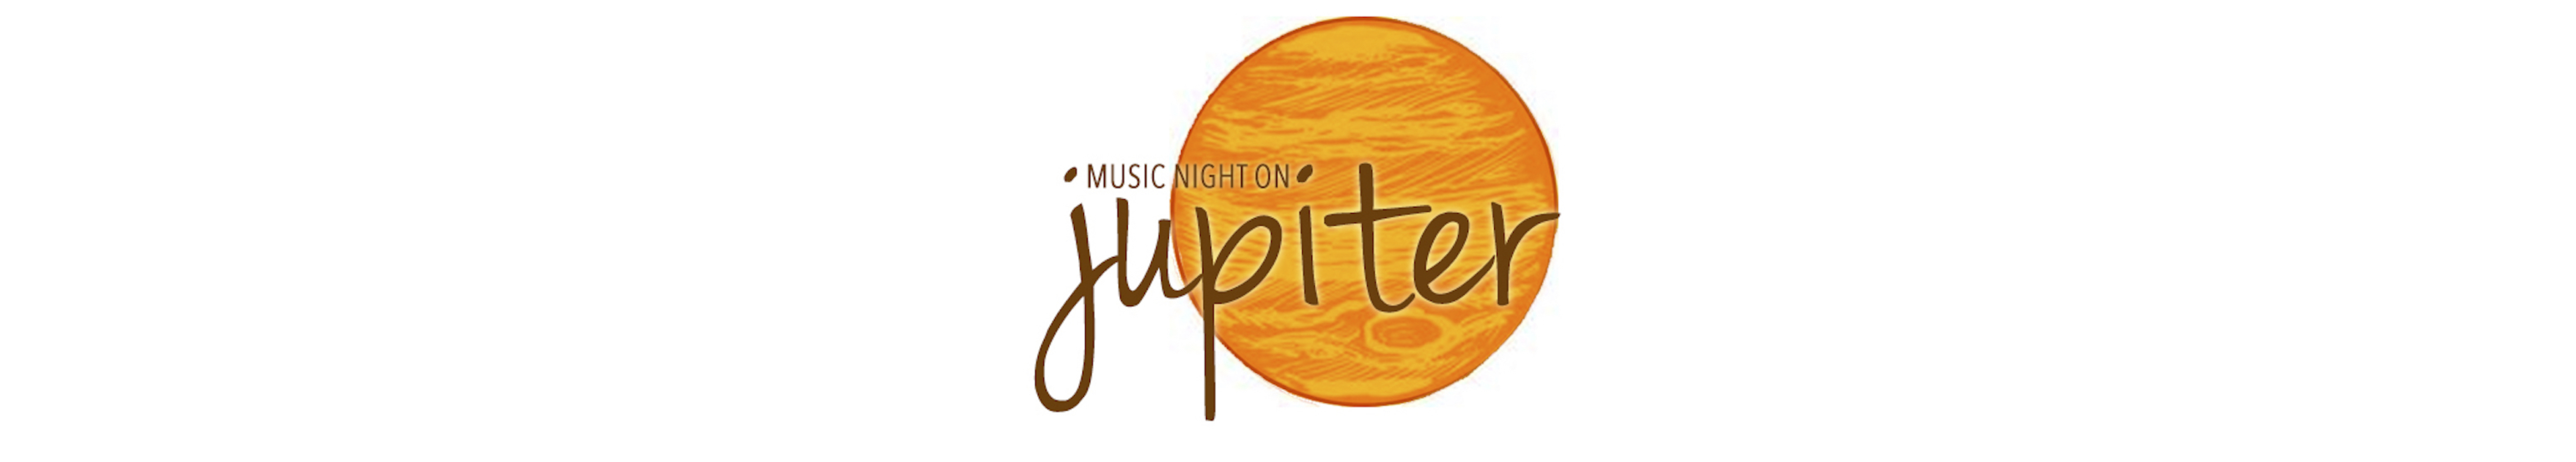 Find tickets from Music Night On Jupiter, LLC